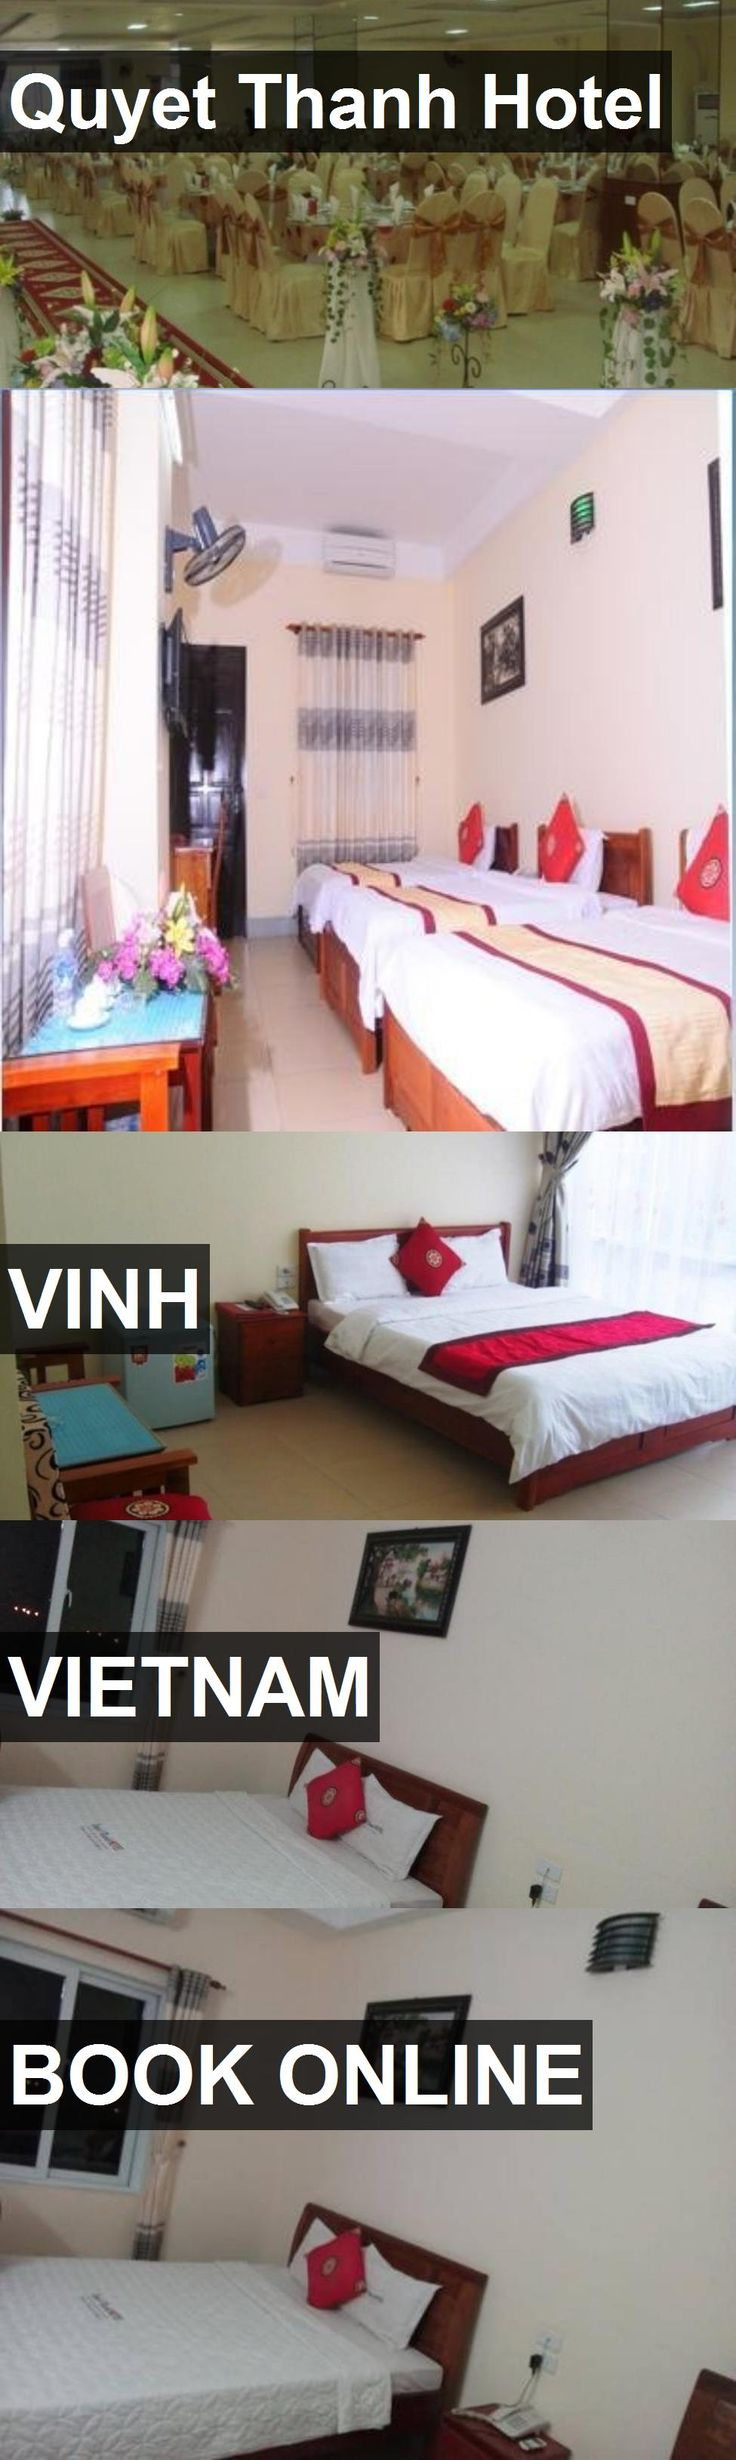 Quyet Thanh Hotel in Vinh, Vietnam. For more information, photos, reviews and best prices please follow the link. #Vietnam #Vinh #travel #vacation #hotel